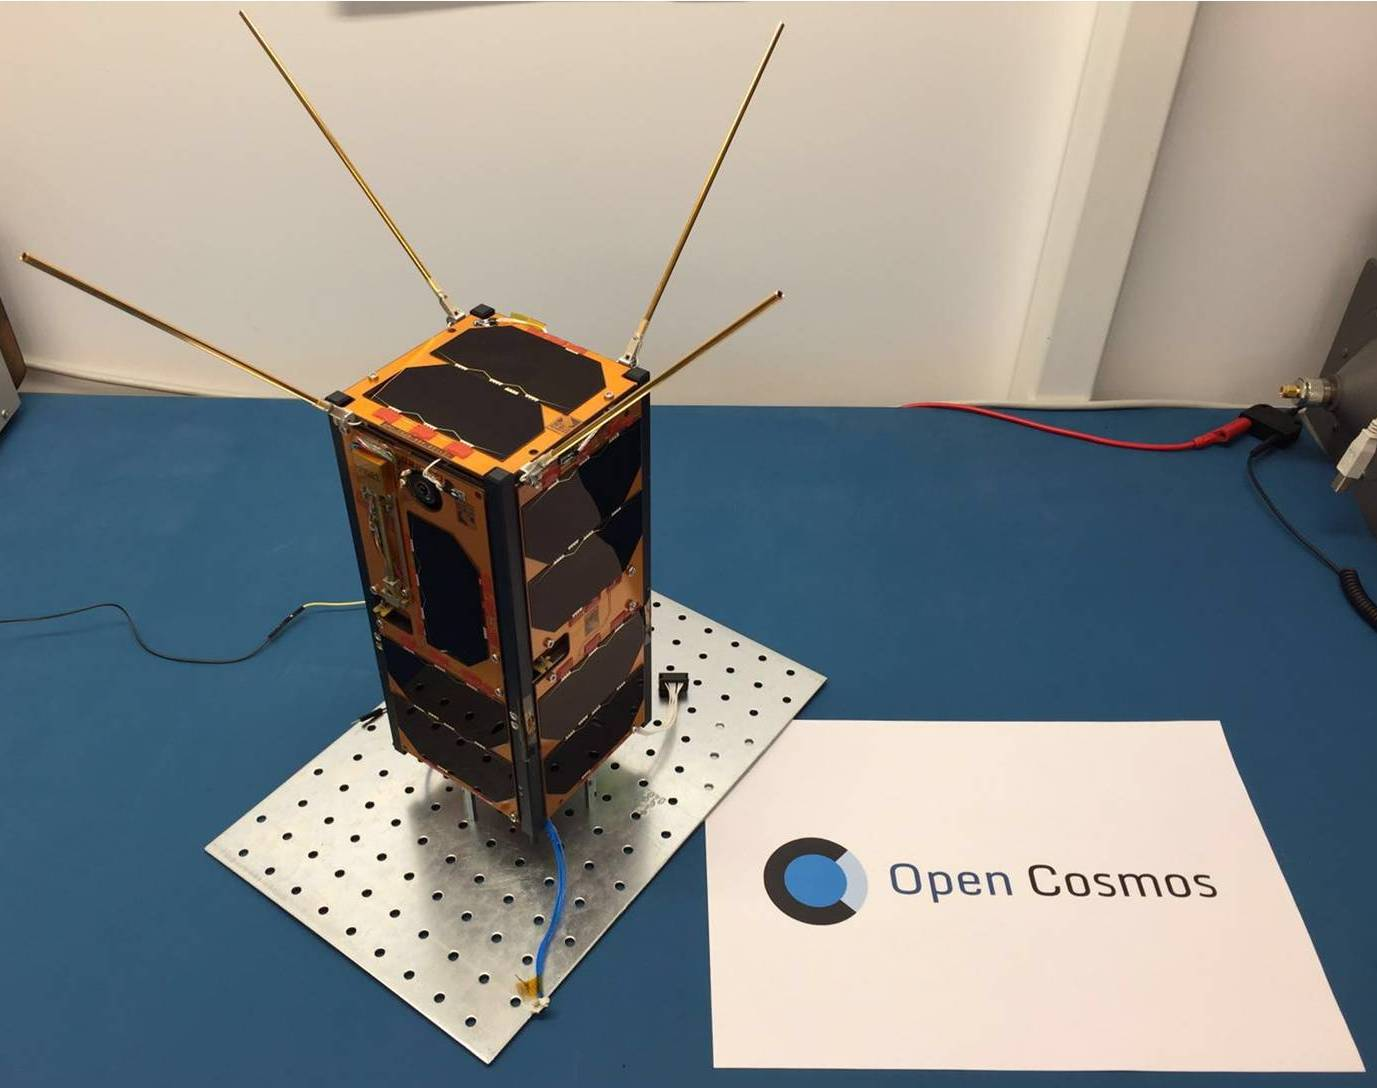 QB01, the first satellite launched by Open Cosmos. Photo: Open Cosmos.